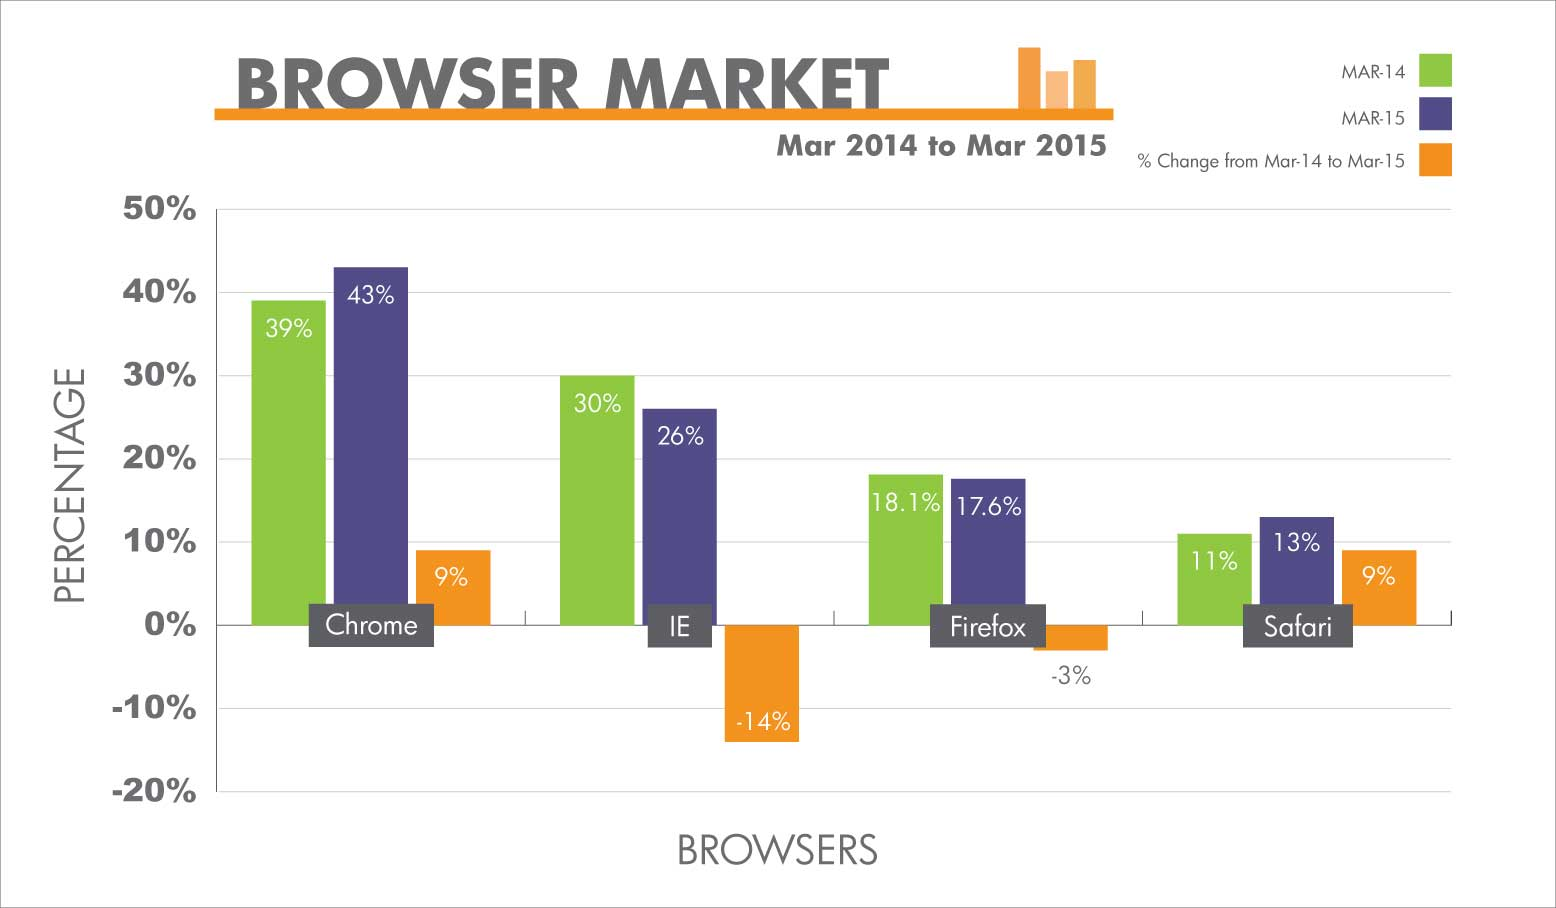 Browser Market Share from March 2014 to March 2015